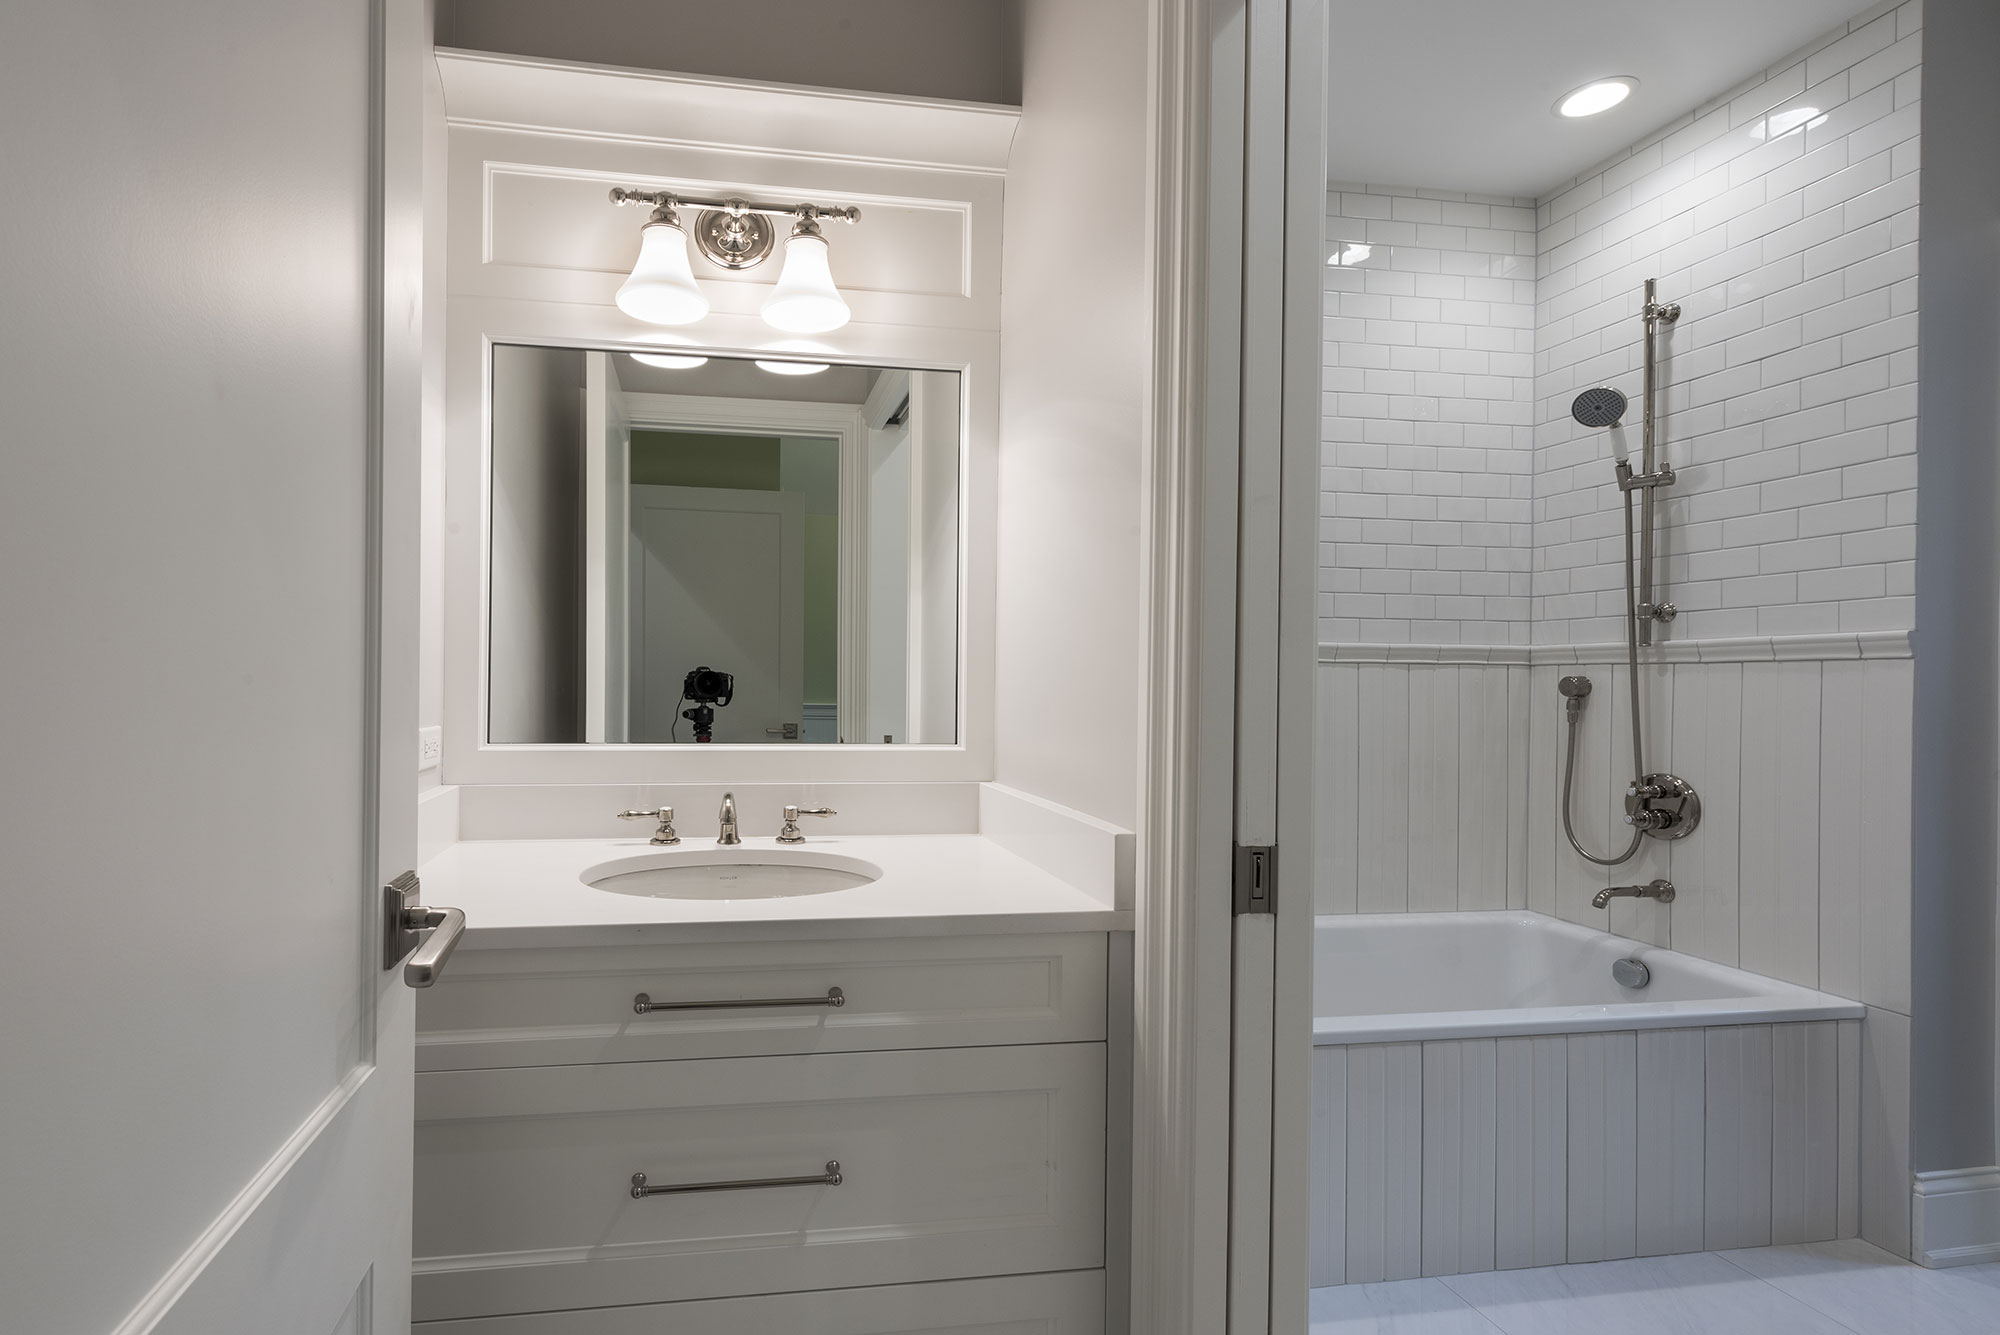 Custom Bathroom Vanities Chicago Bathroom Vanity, Transitional Style Custom  Home | Glenview Haus